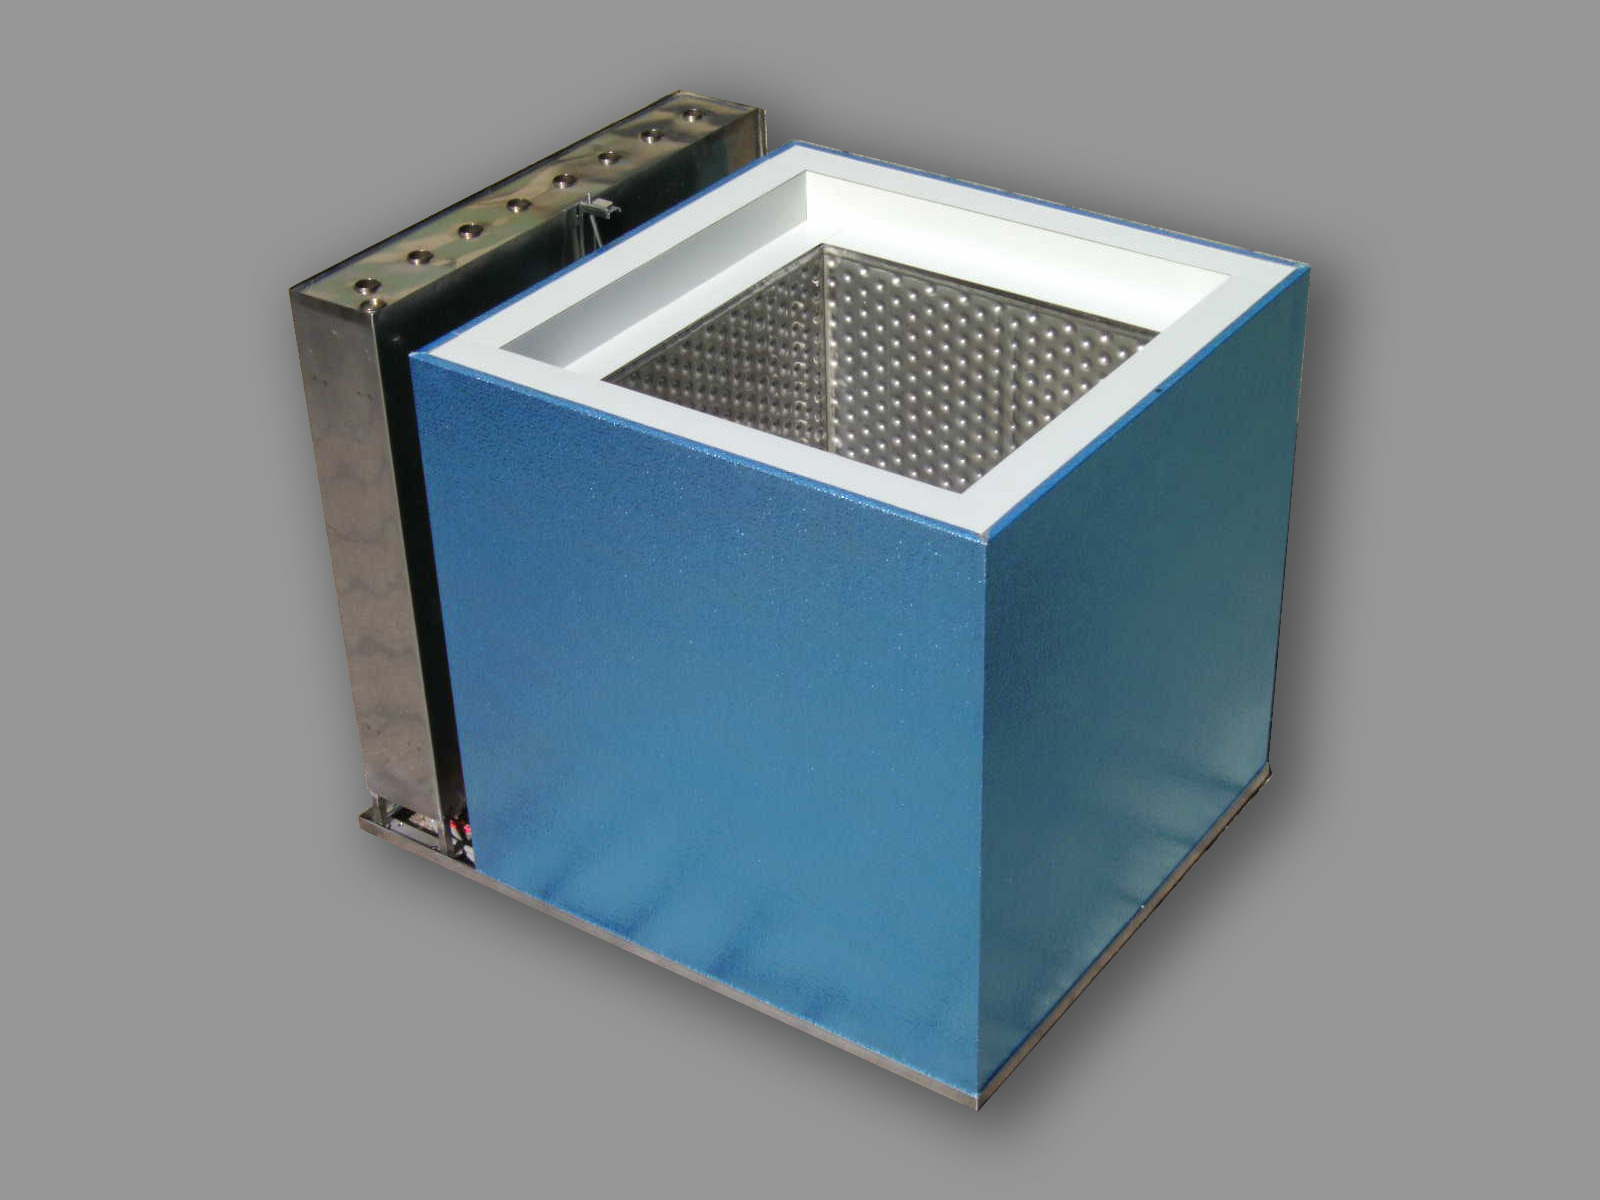 Self-Cooling Freezer Box